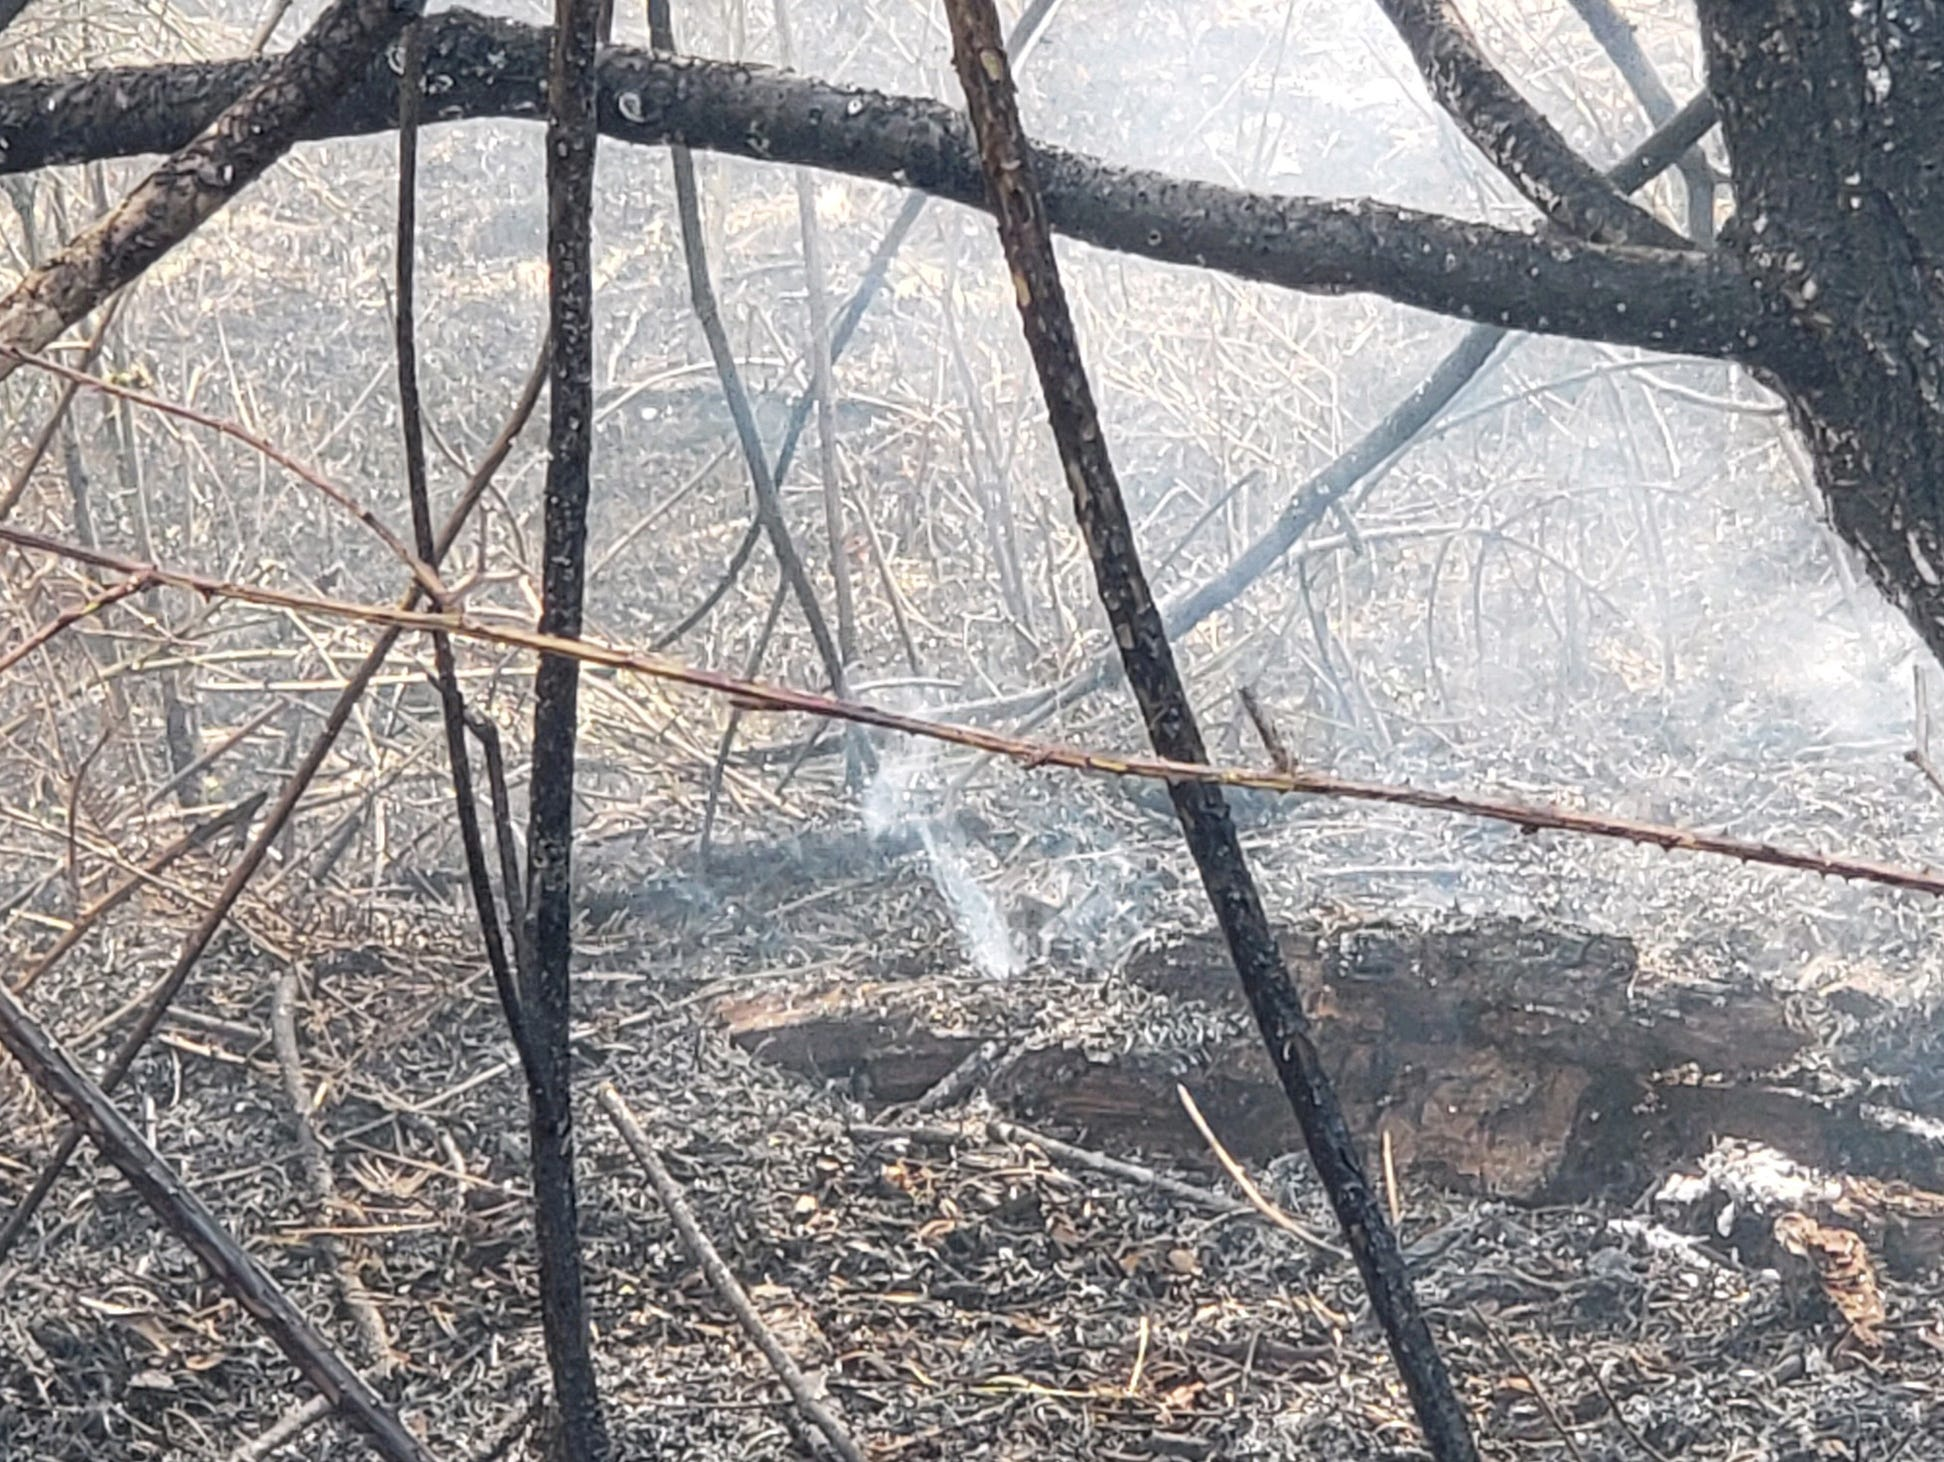 A burned area east of Lyons after a grass fire that was reported Tuesday afternoon near North Santiam State Park between Mehama and Mill City on the Marion County side of the North Santiam River.